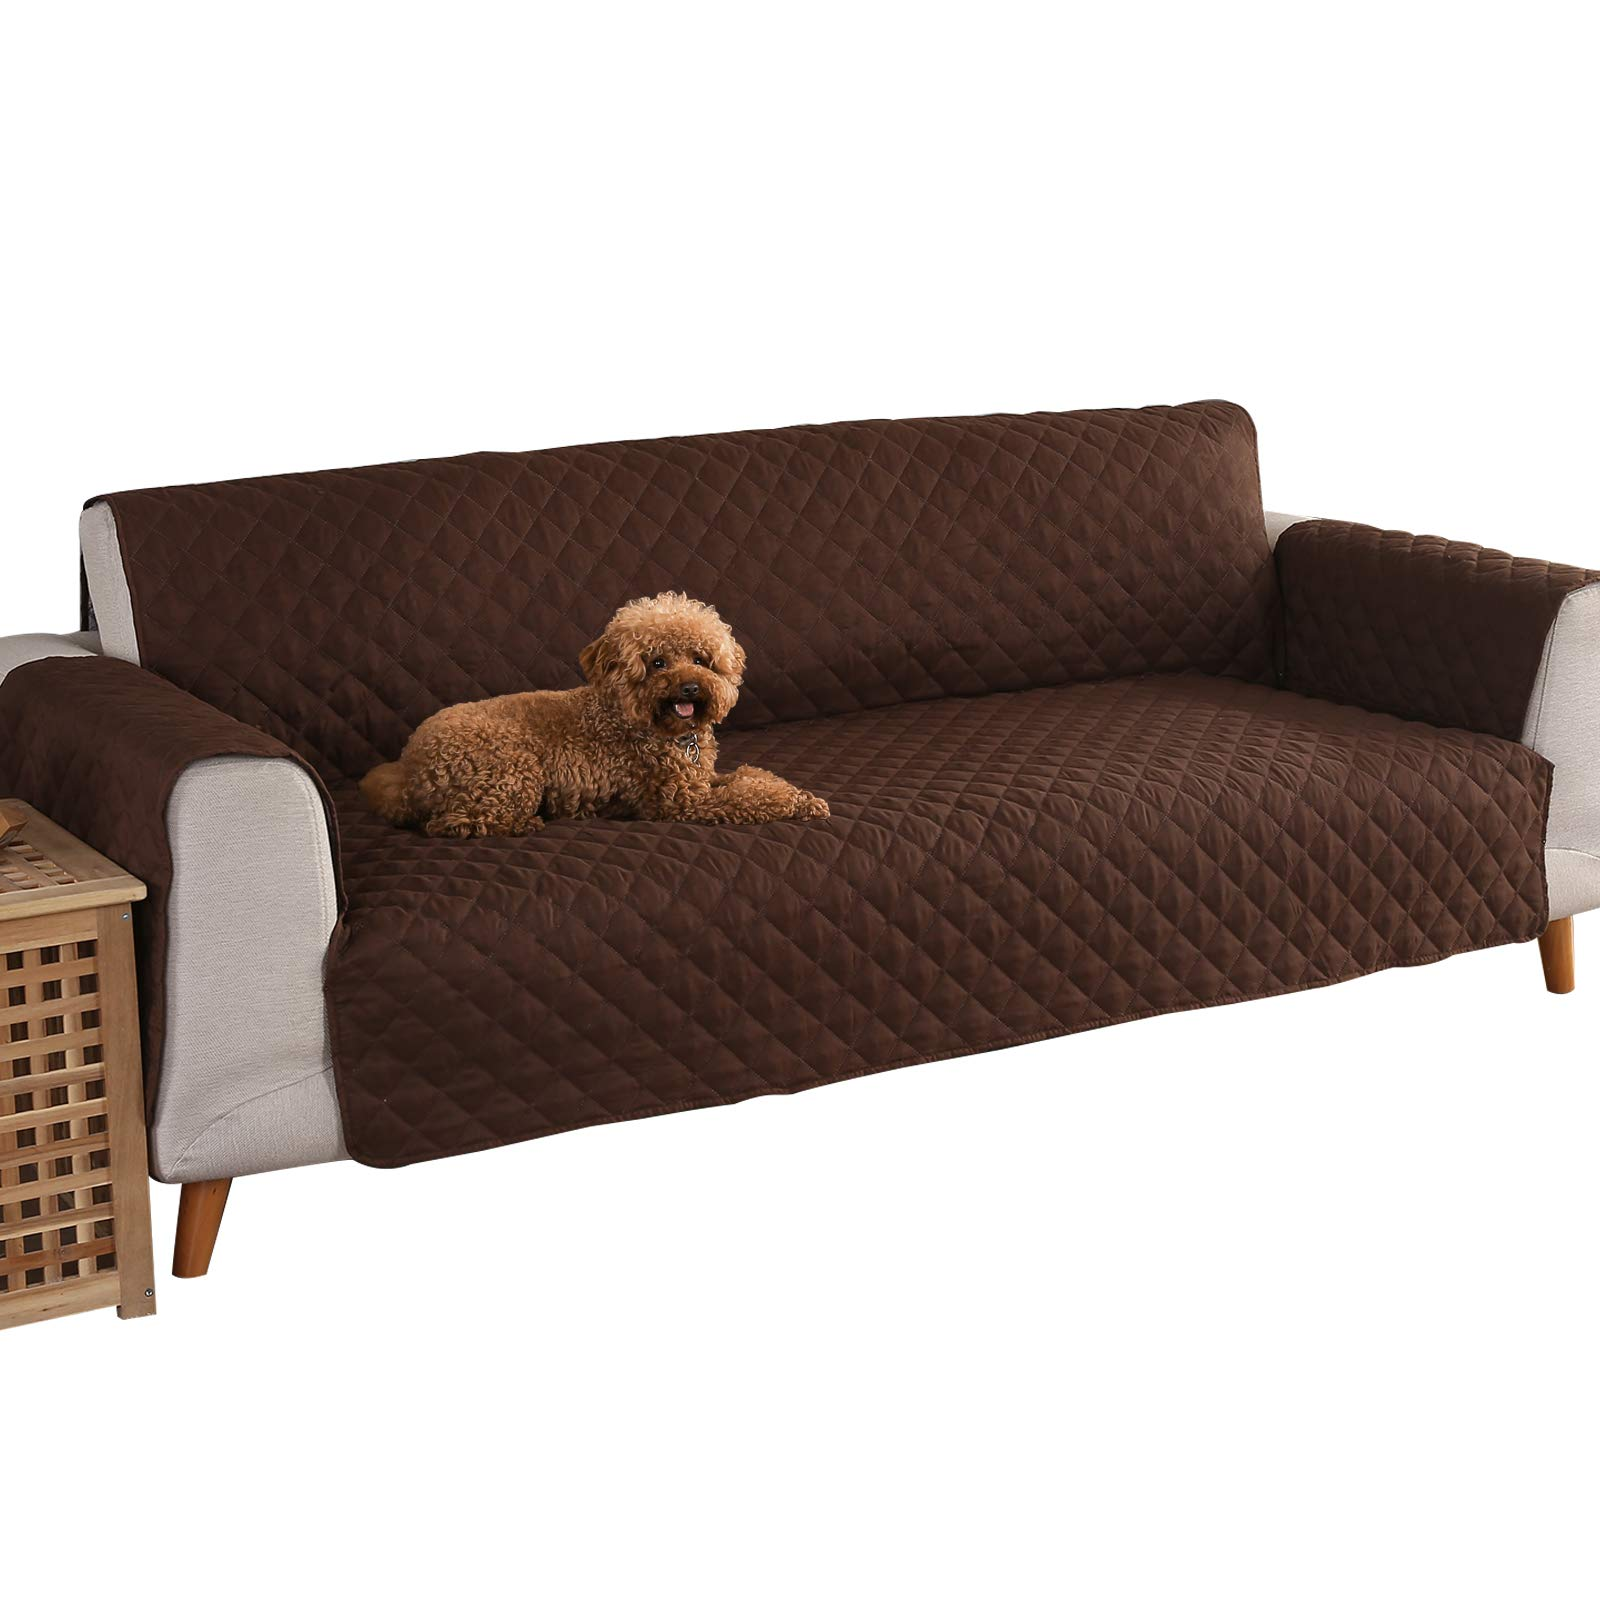 YESHOME Sofa Cover slipcovers-Quilted Upgrade Anti-slip Couch Covers-Waterproof Sofa Protector With Elastic Strap-Furniture Cover For Dogs Pet (Sofa, Brown-Gray)